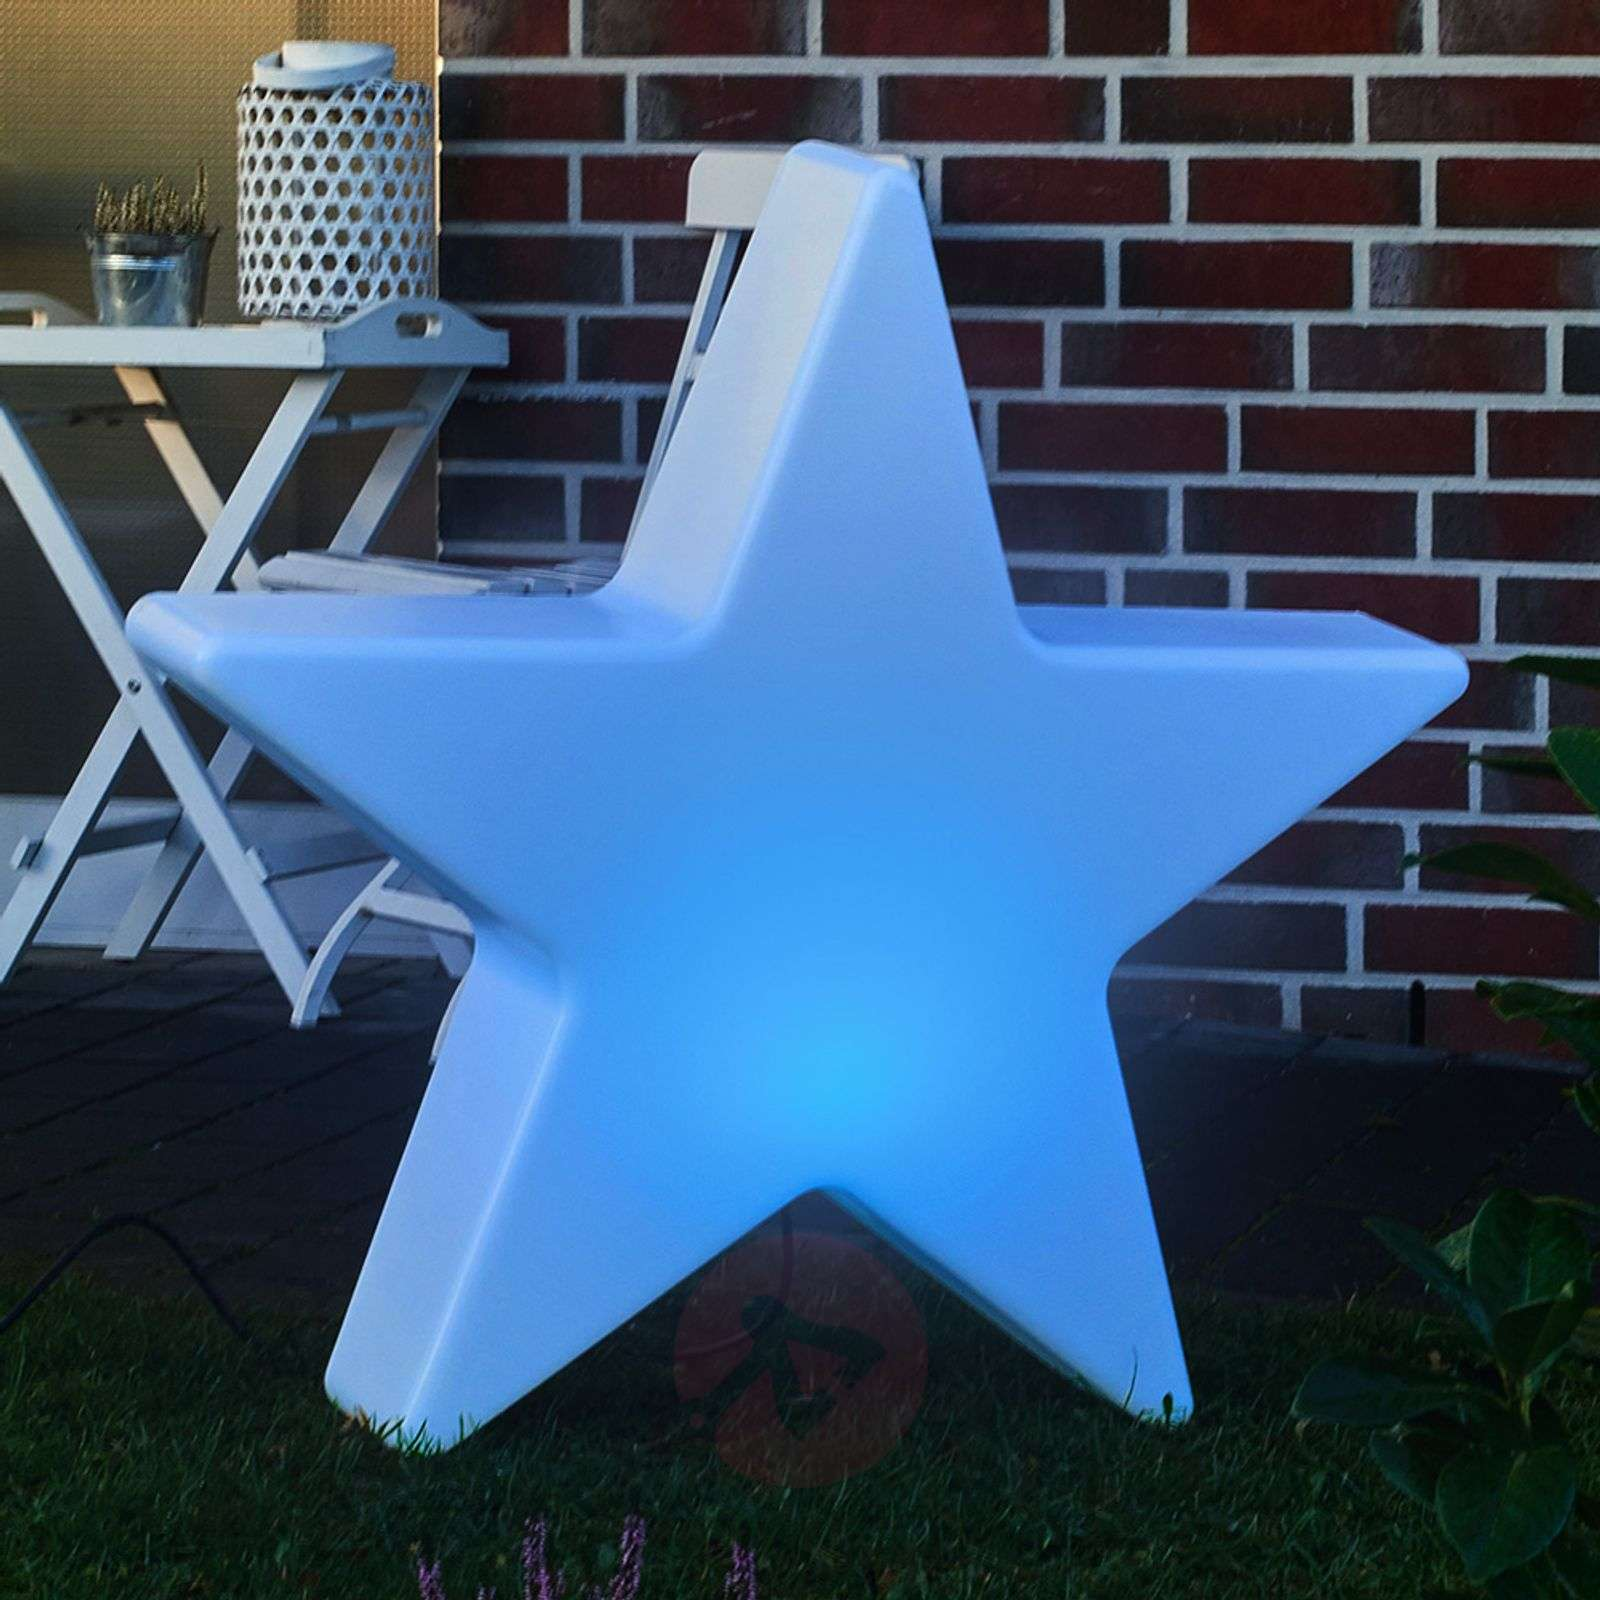 Decoratieve LED-ster Shining Star, 60 cm-1004083-01